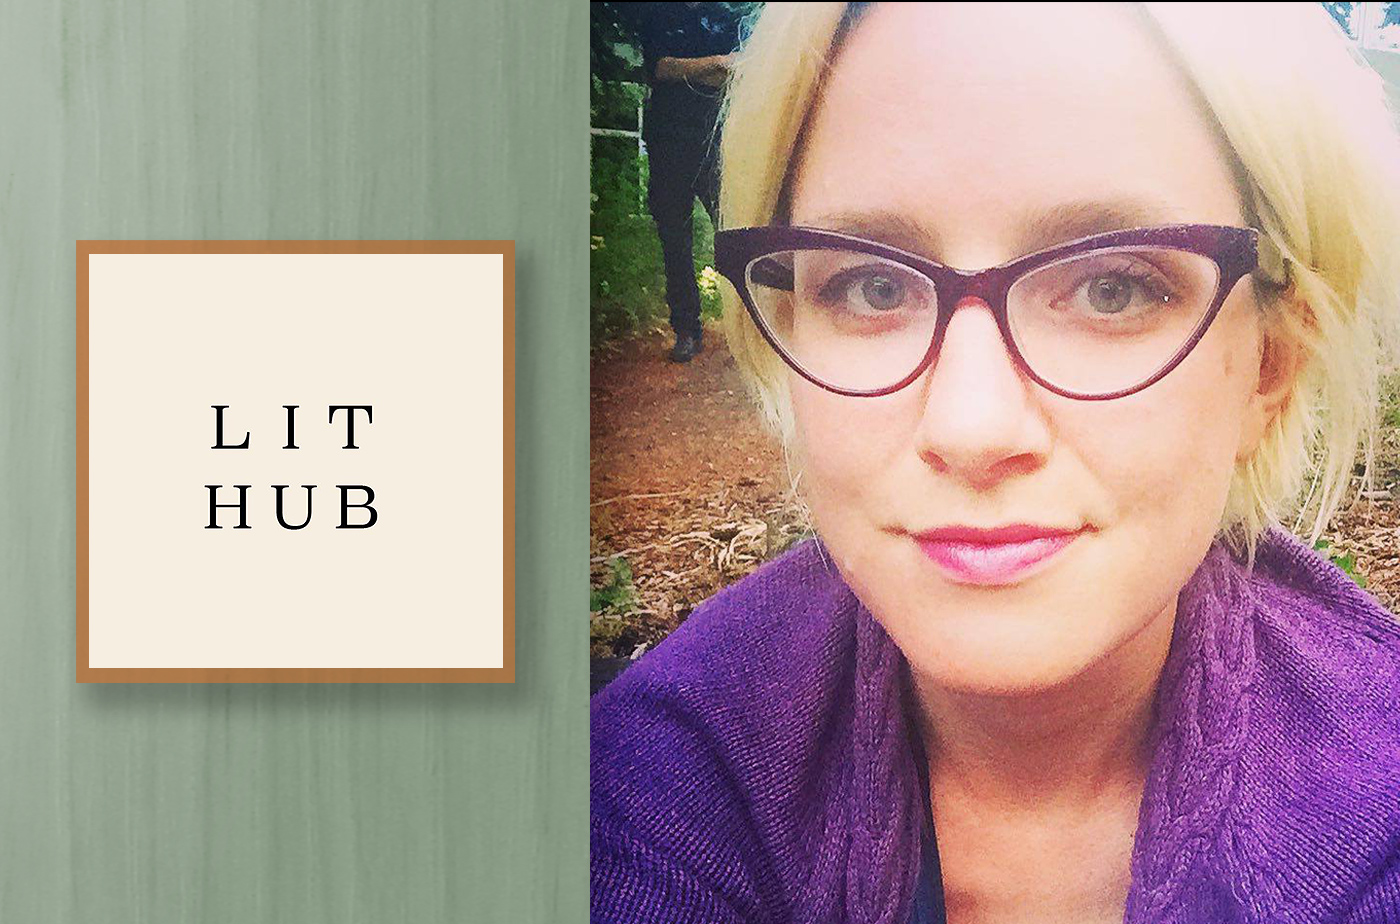 Catapult  classes: Michele Filgate, Building a Writing Career on the Internet, Nonfiction, Workshop